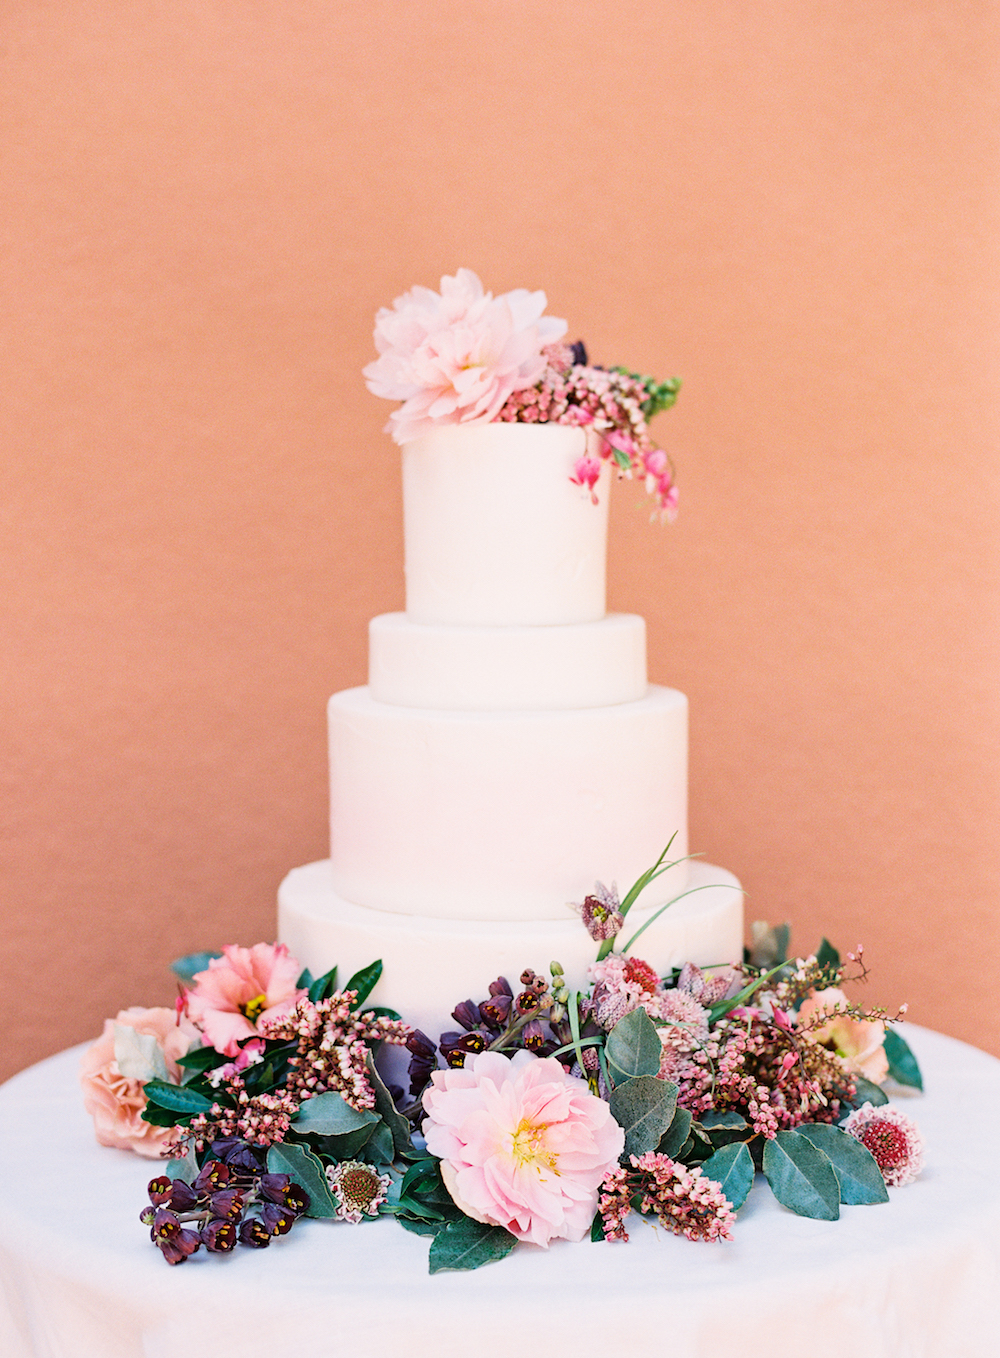 Wedding Cakes with Fresh Flowers - Winnipeg Wedding Florists